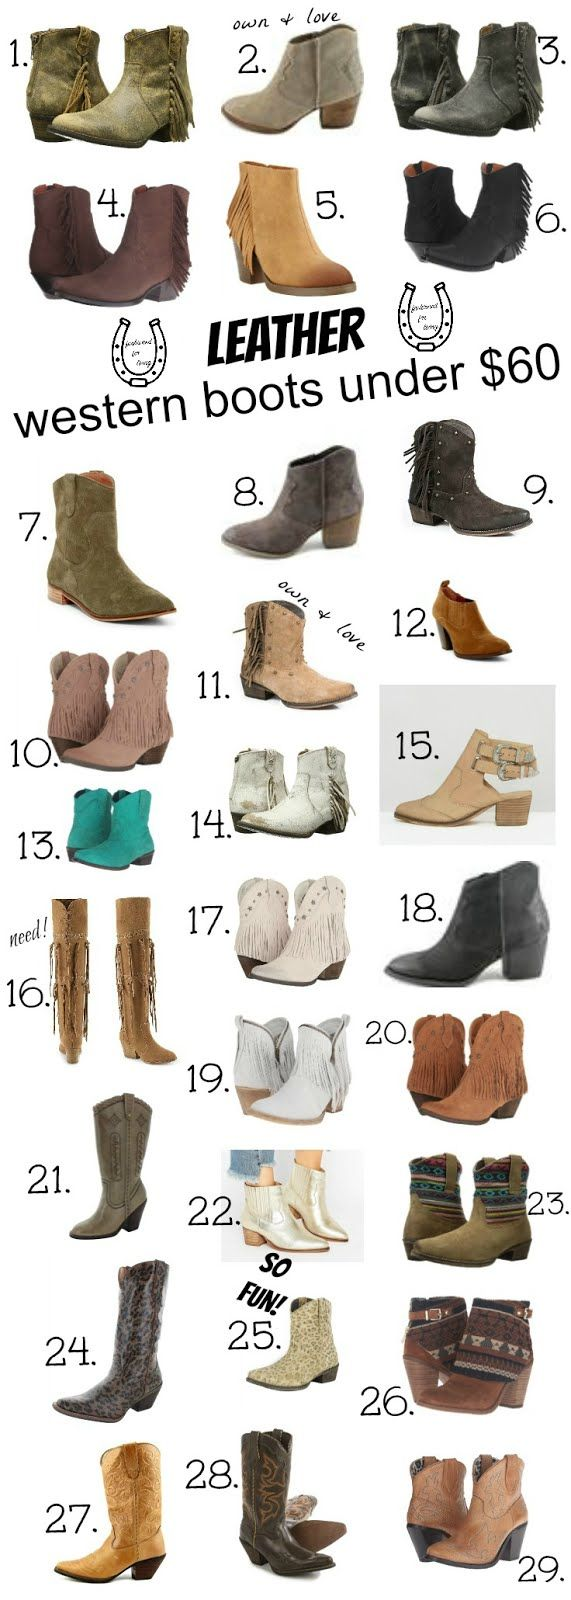 leather western boots under $60. cheap cowboy boots. cowgirl boots for spring and summer